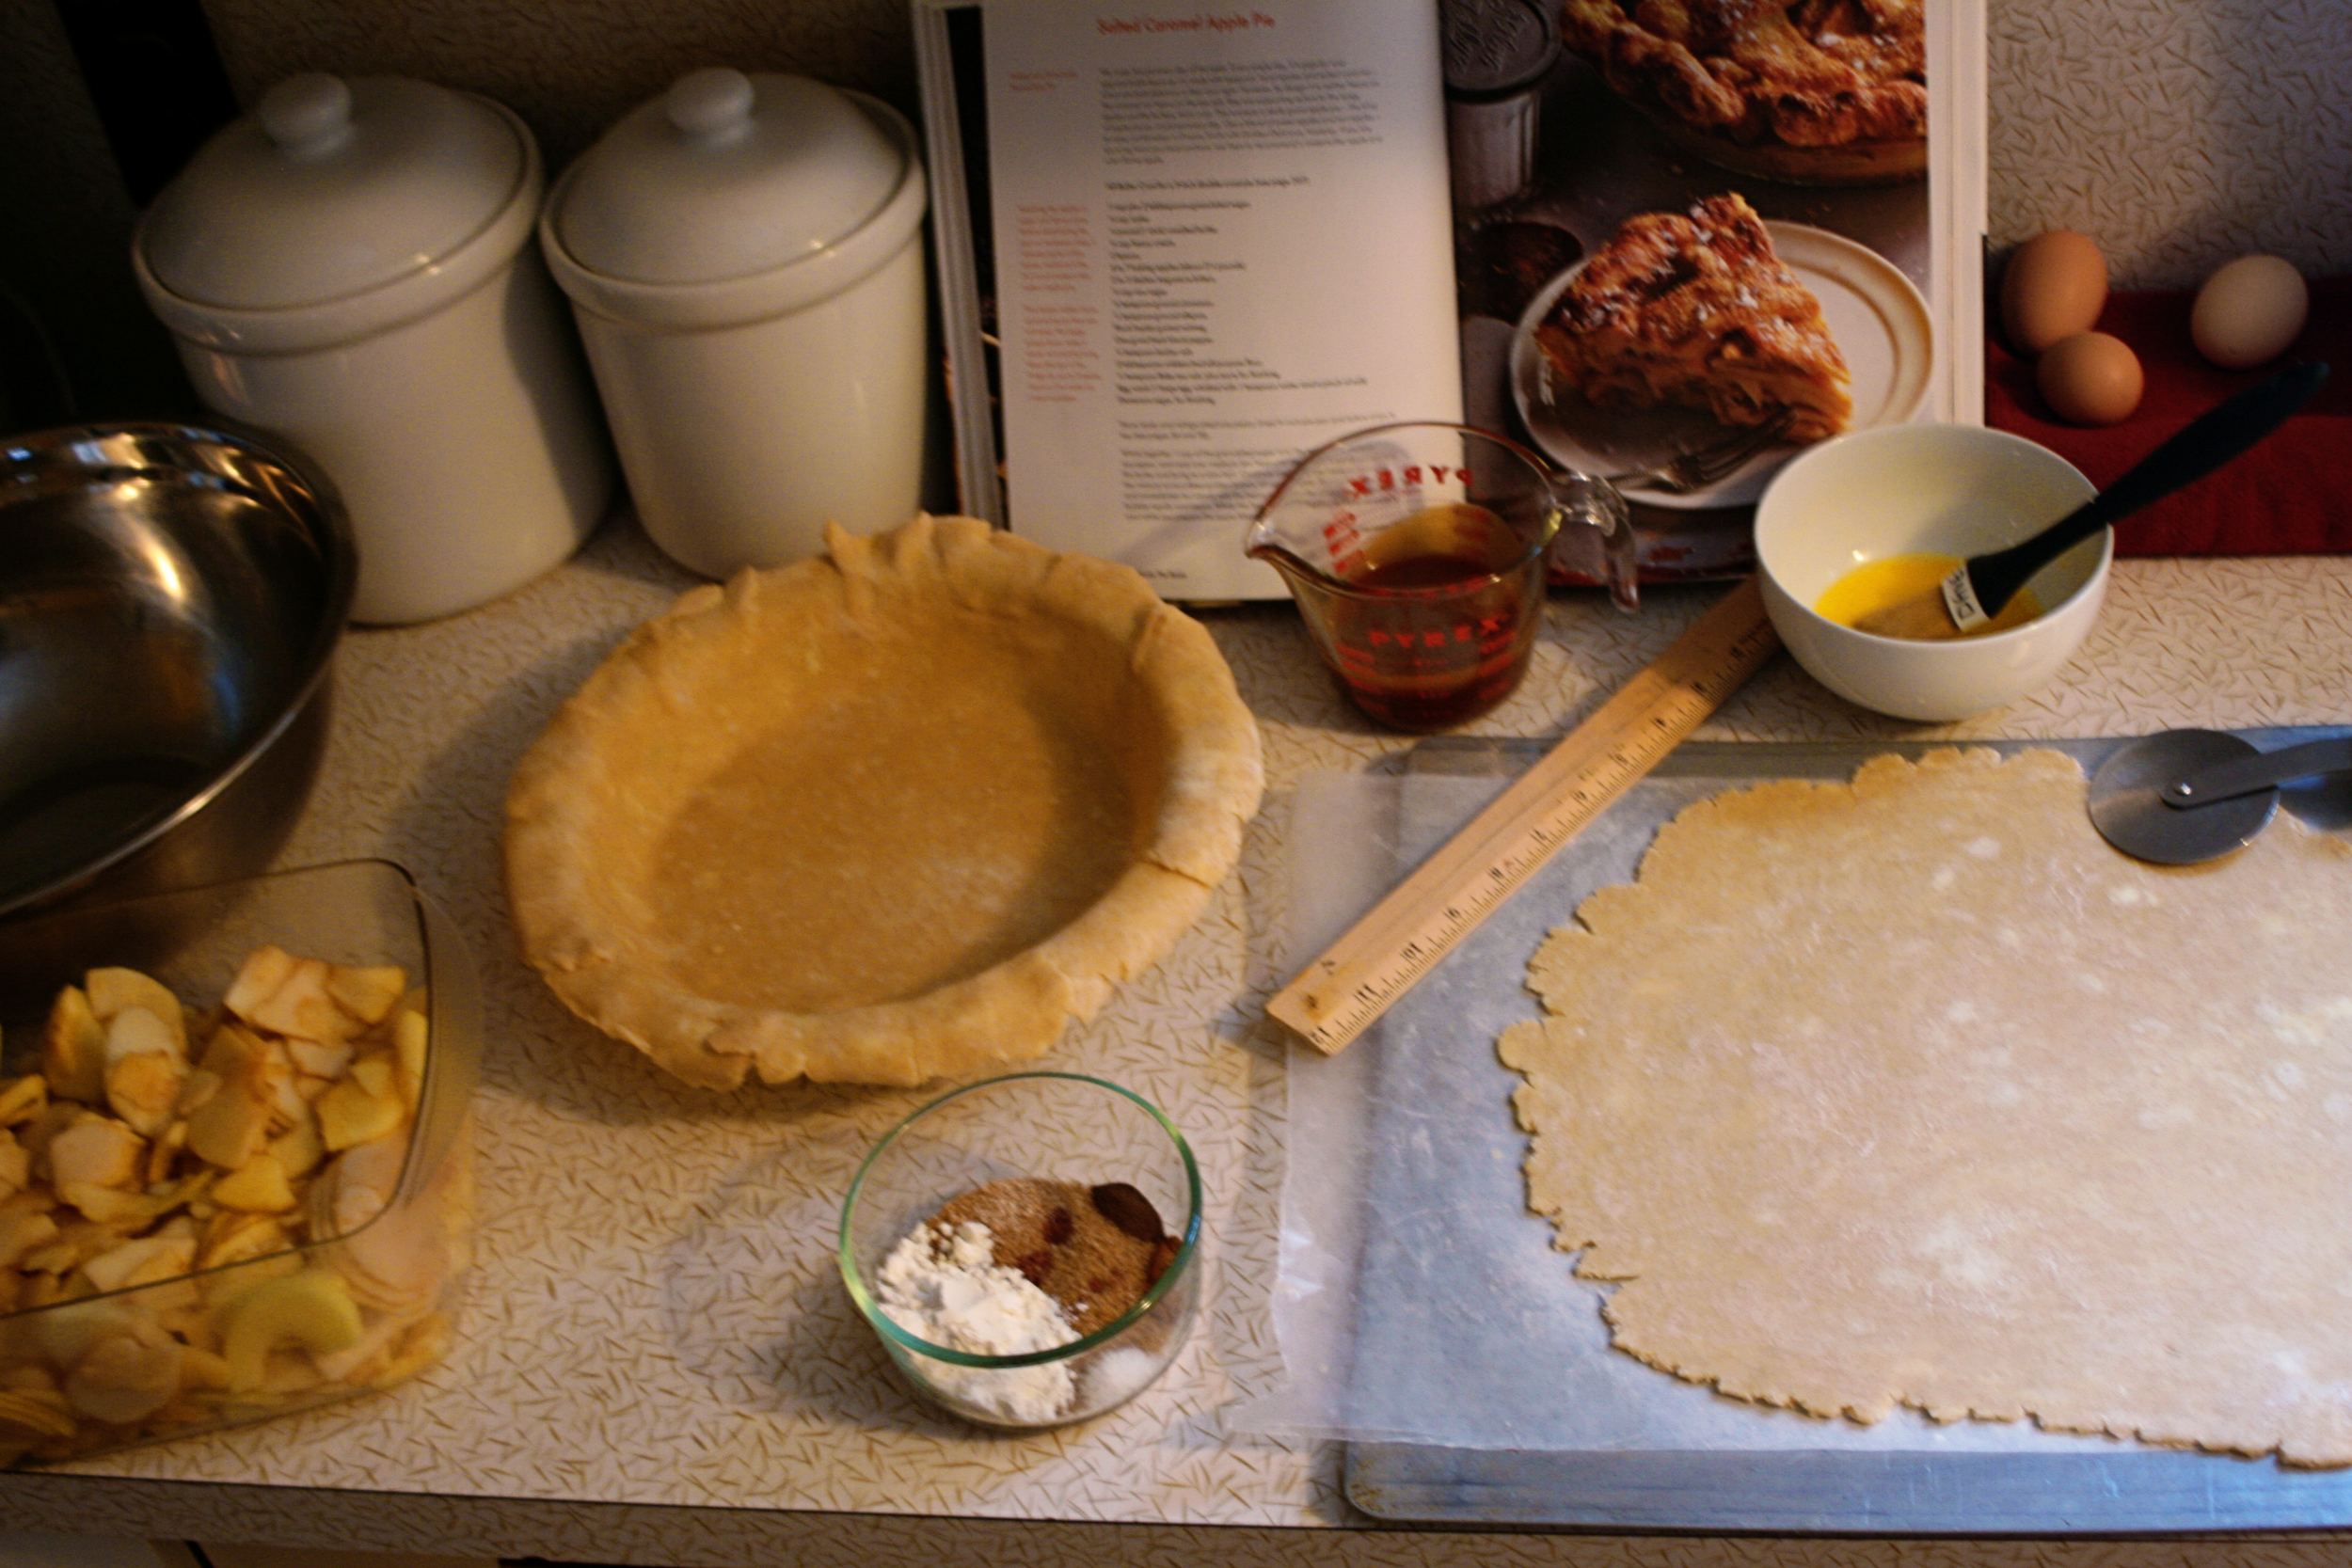 Here's aview of what I had ready for myself on day two thanks to day one's prep: apples, sliced and mixed with lemon and sugar; sugar-spice mixture; caramel, measured and ready to pour; pie dough that had been rolled out, halfleft on a sheet tray and popped into the freezer (only spot it fit) and one placed in the pie pan (kept in the fridge).